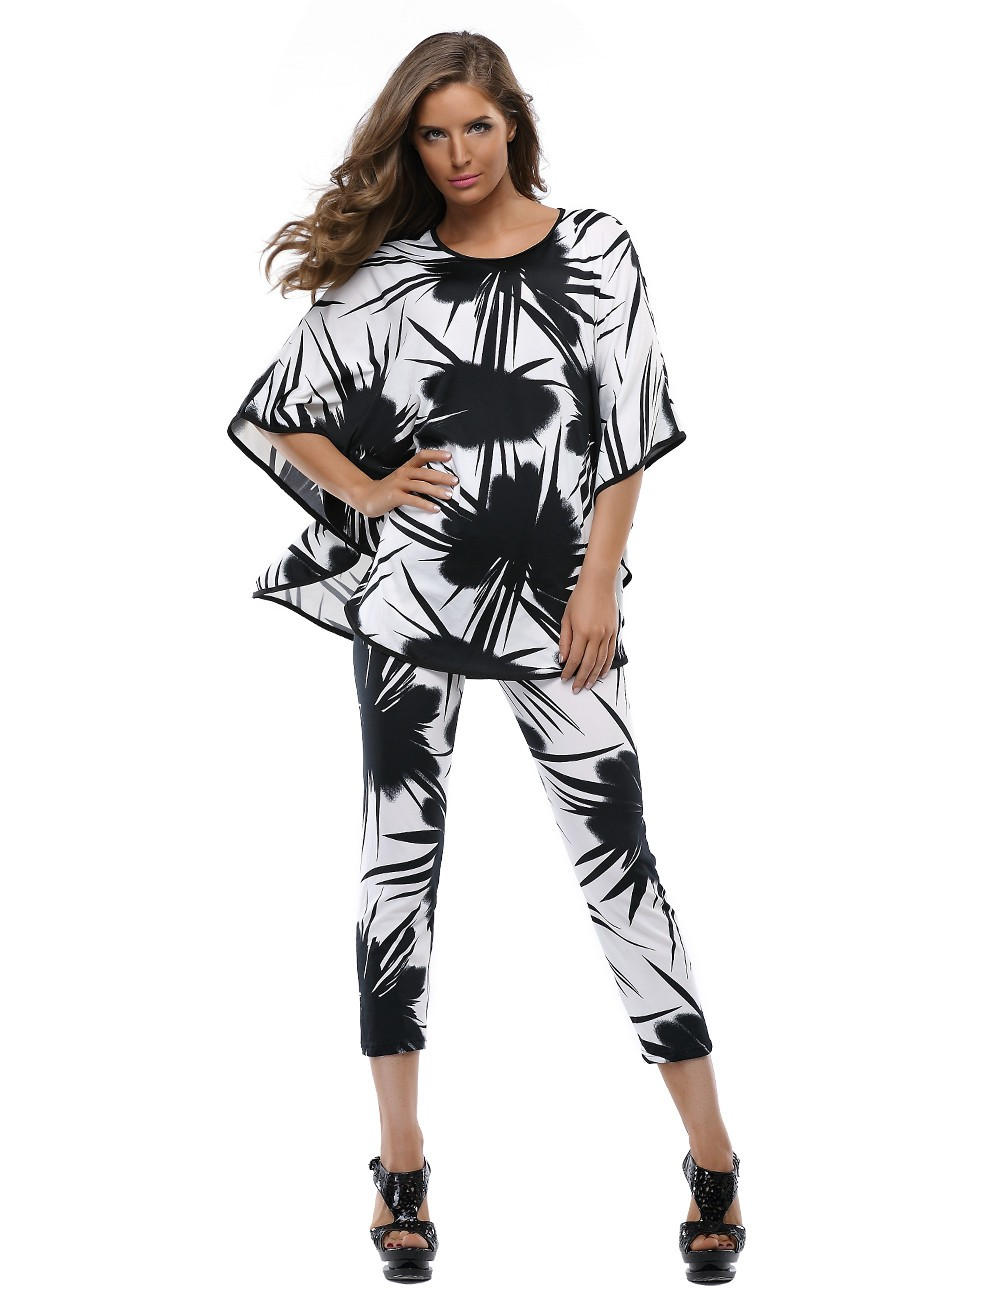 huge discount buy online 2019 authentic 2 Piece Set Casual Pants Suits For Women Batwing Sleeve Tops Women's Sets  African Clothing - Buy Womens Casual Pant Suits,Summer Womens Casual ...